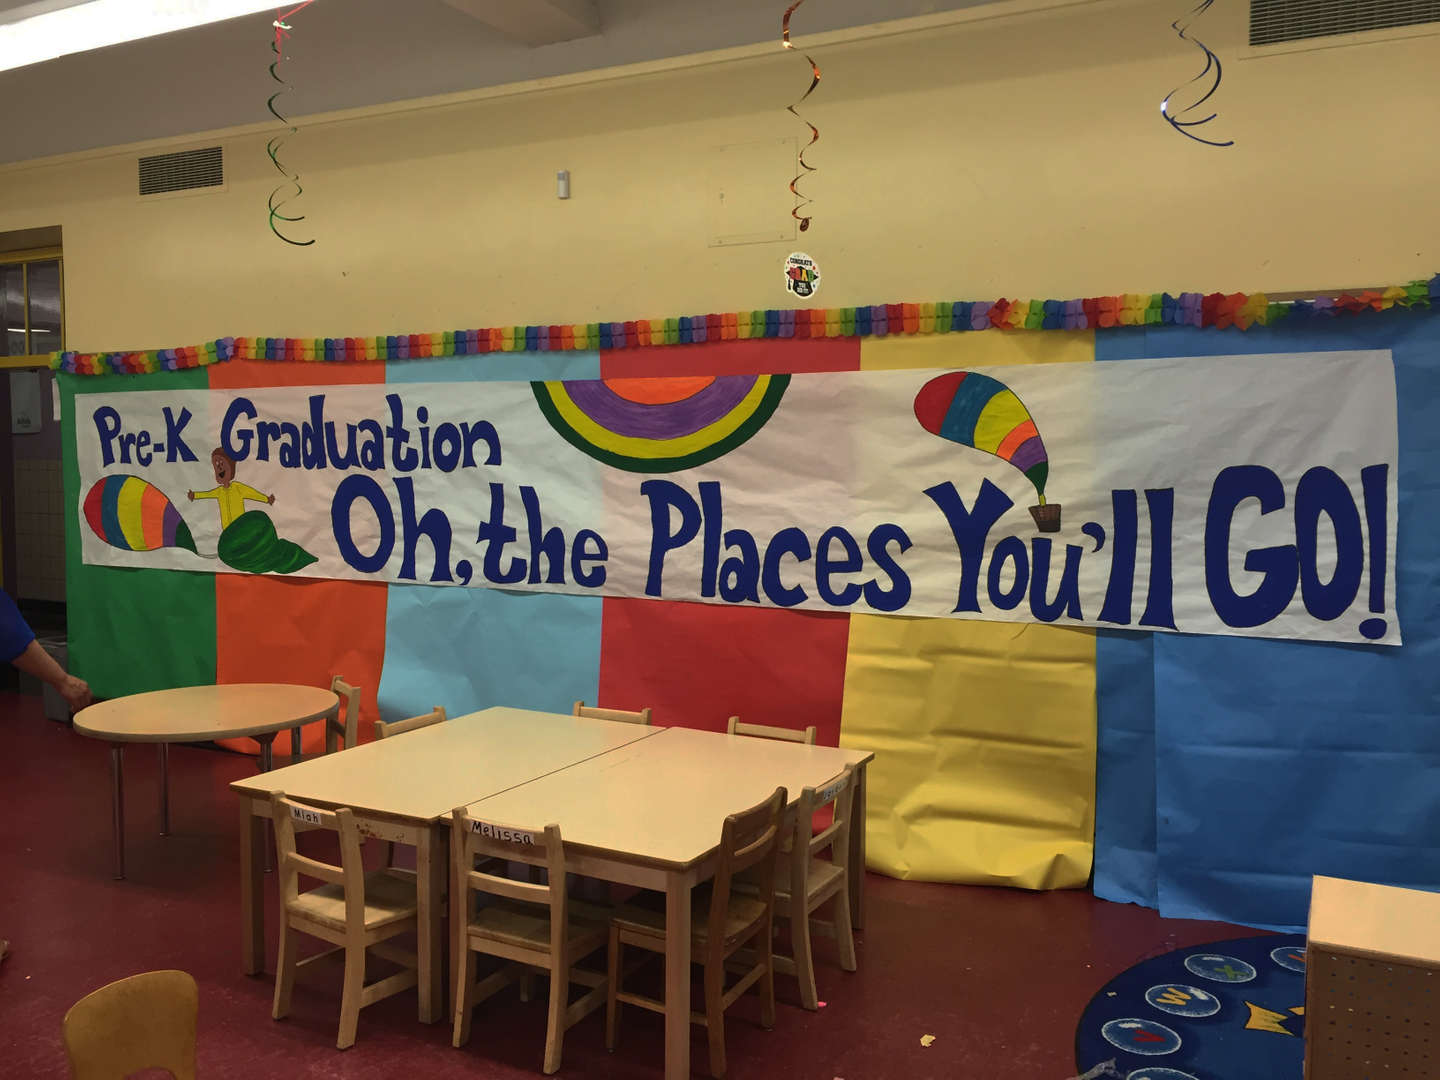 Pre-K Graduation, oh the places you'll go!